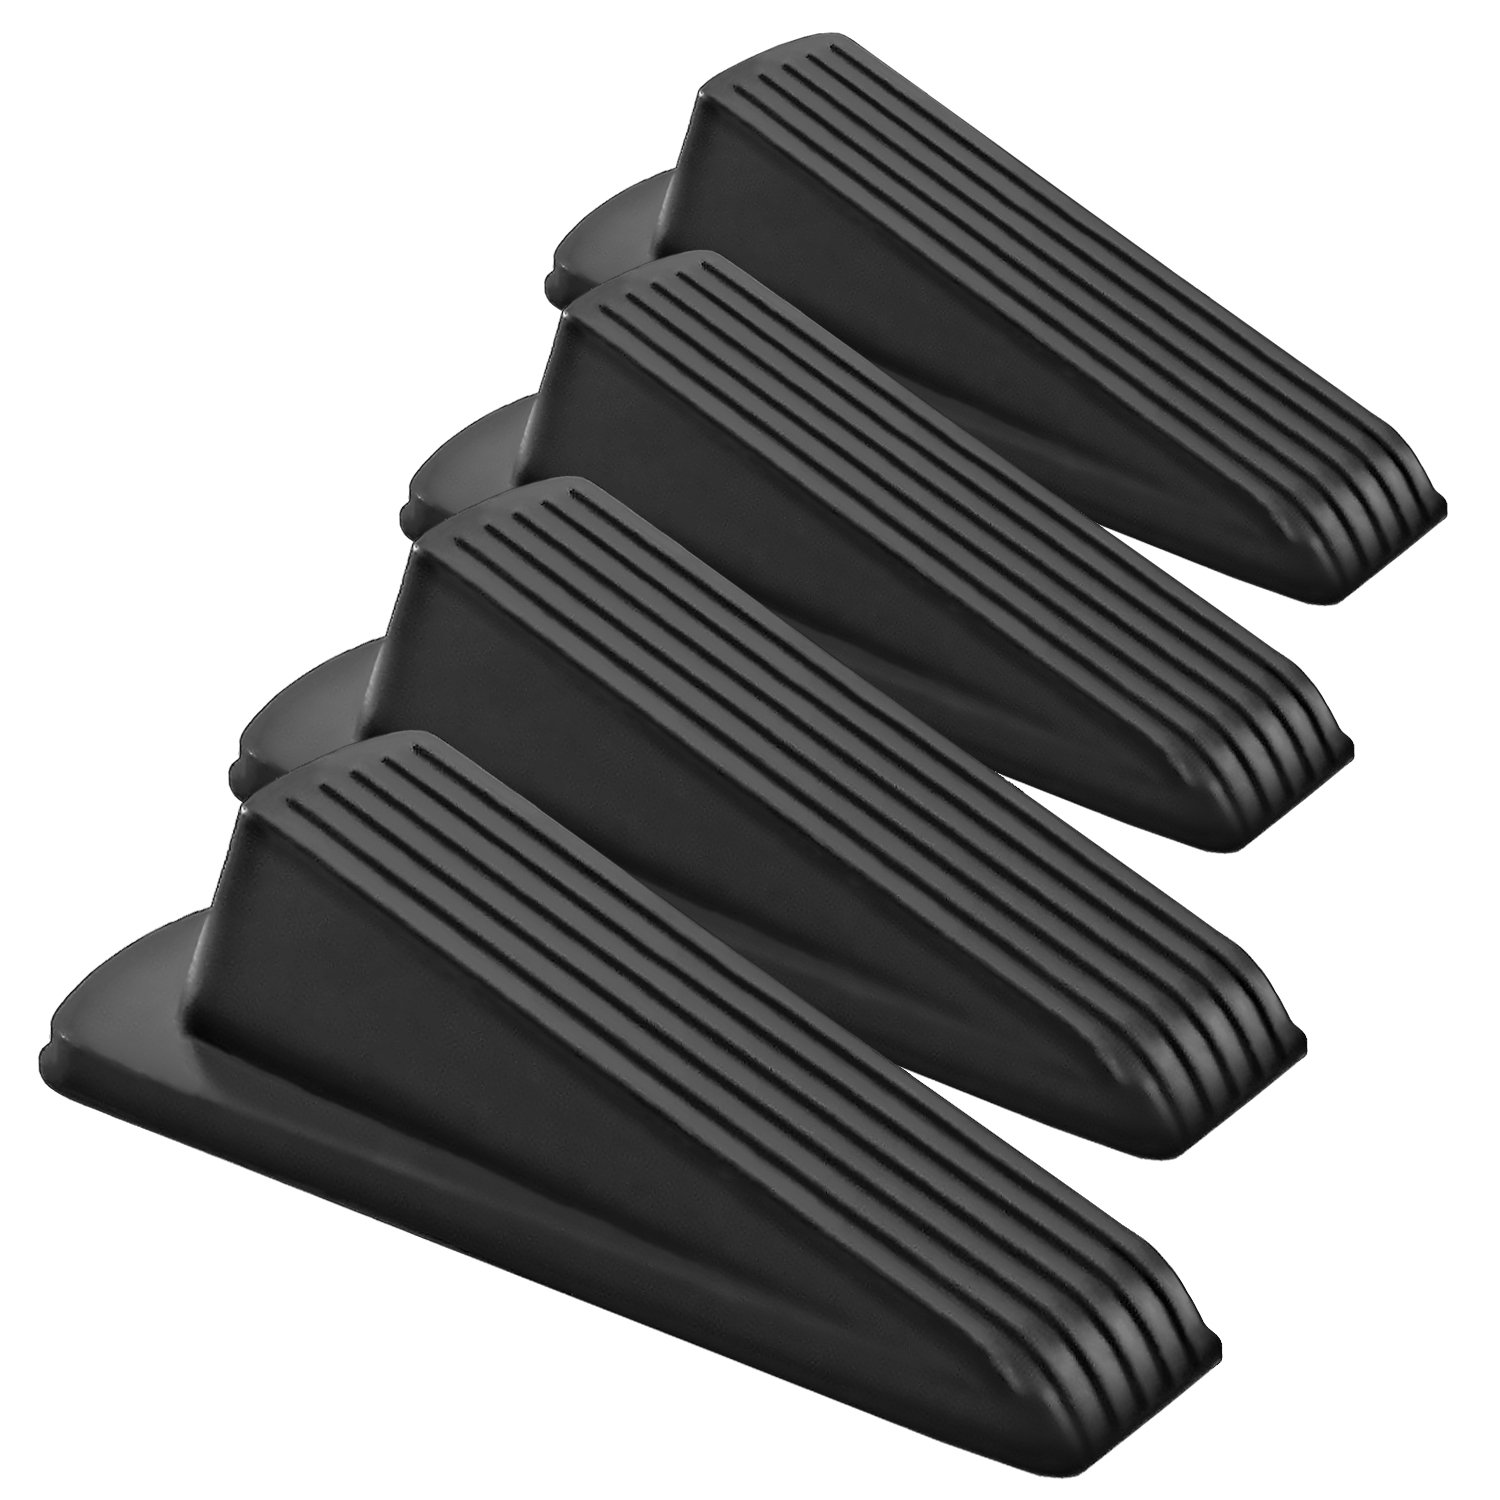 Home Premium Rubber Door Stop - Large Door Stopper Wedge, Multi Surface Design (4 Pack, Black) by HOME PREMIUM